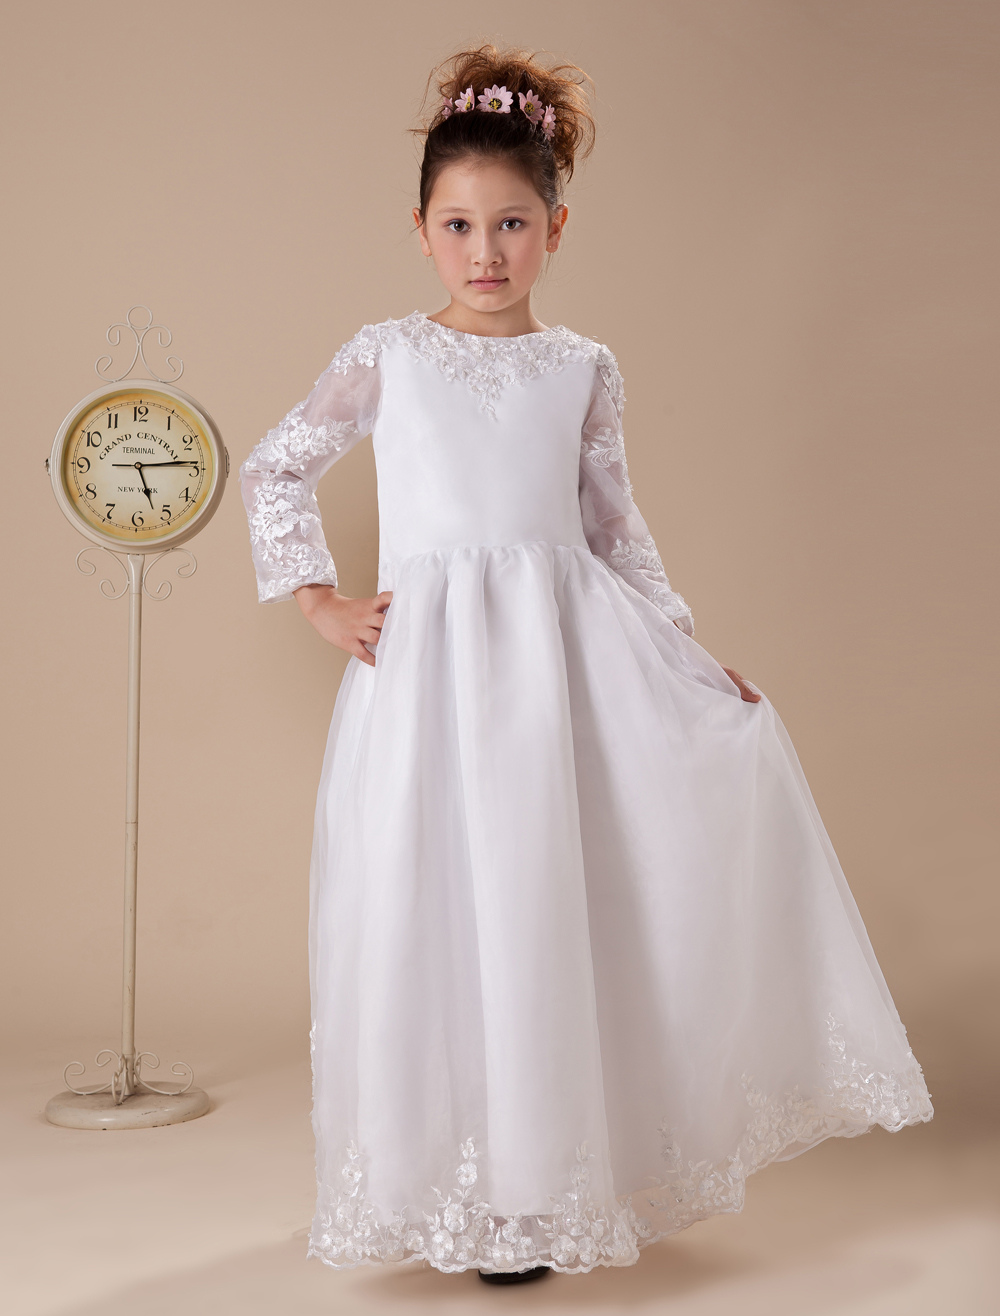 Shop girls long sleeve dresses cheap sale online, you can buy long sleeve flower girl dresses, printed long sleeve dresses for girls and more at wholesale prices on forex-2016.ga FREE shipping available worldwide.